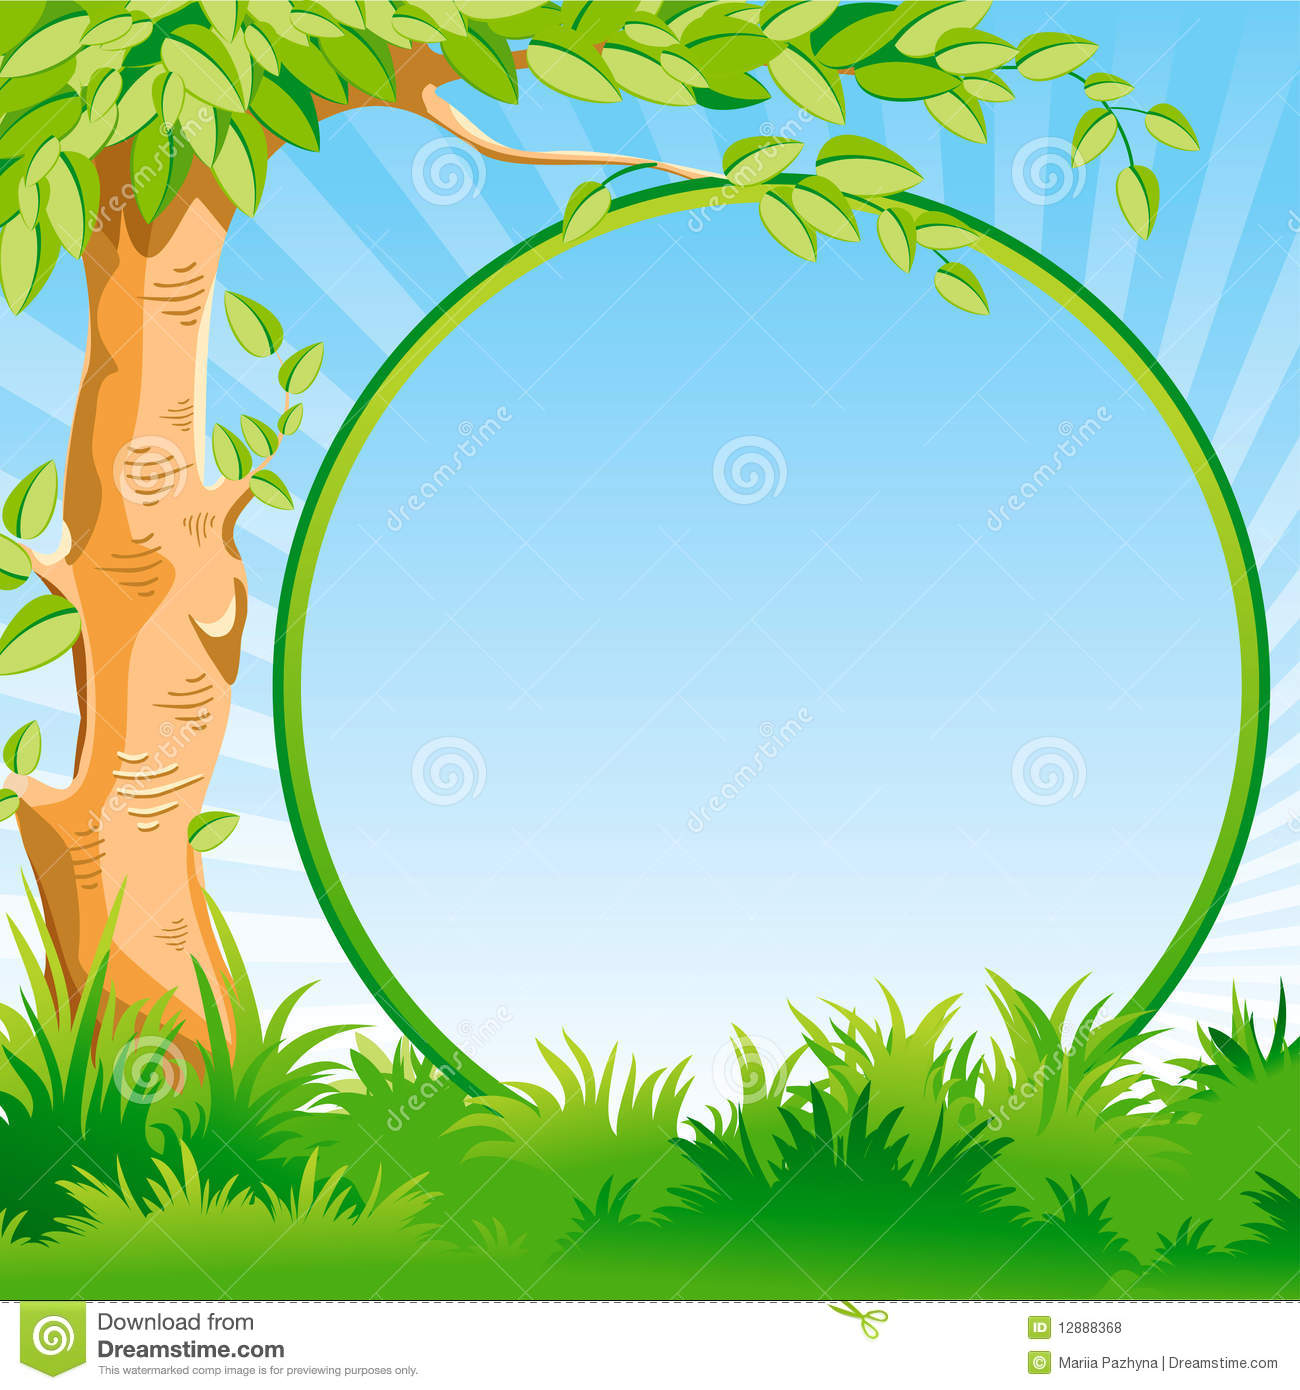 landscape with a tree and frame stock vector